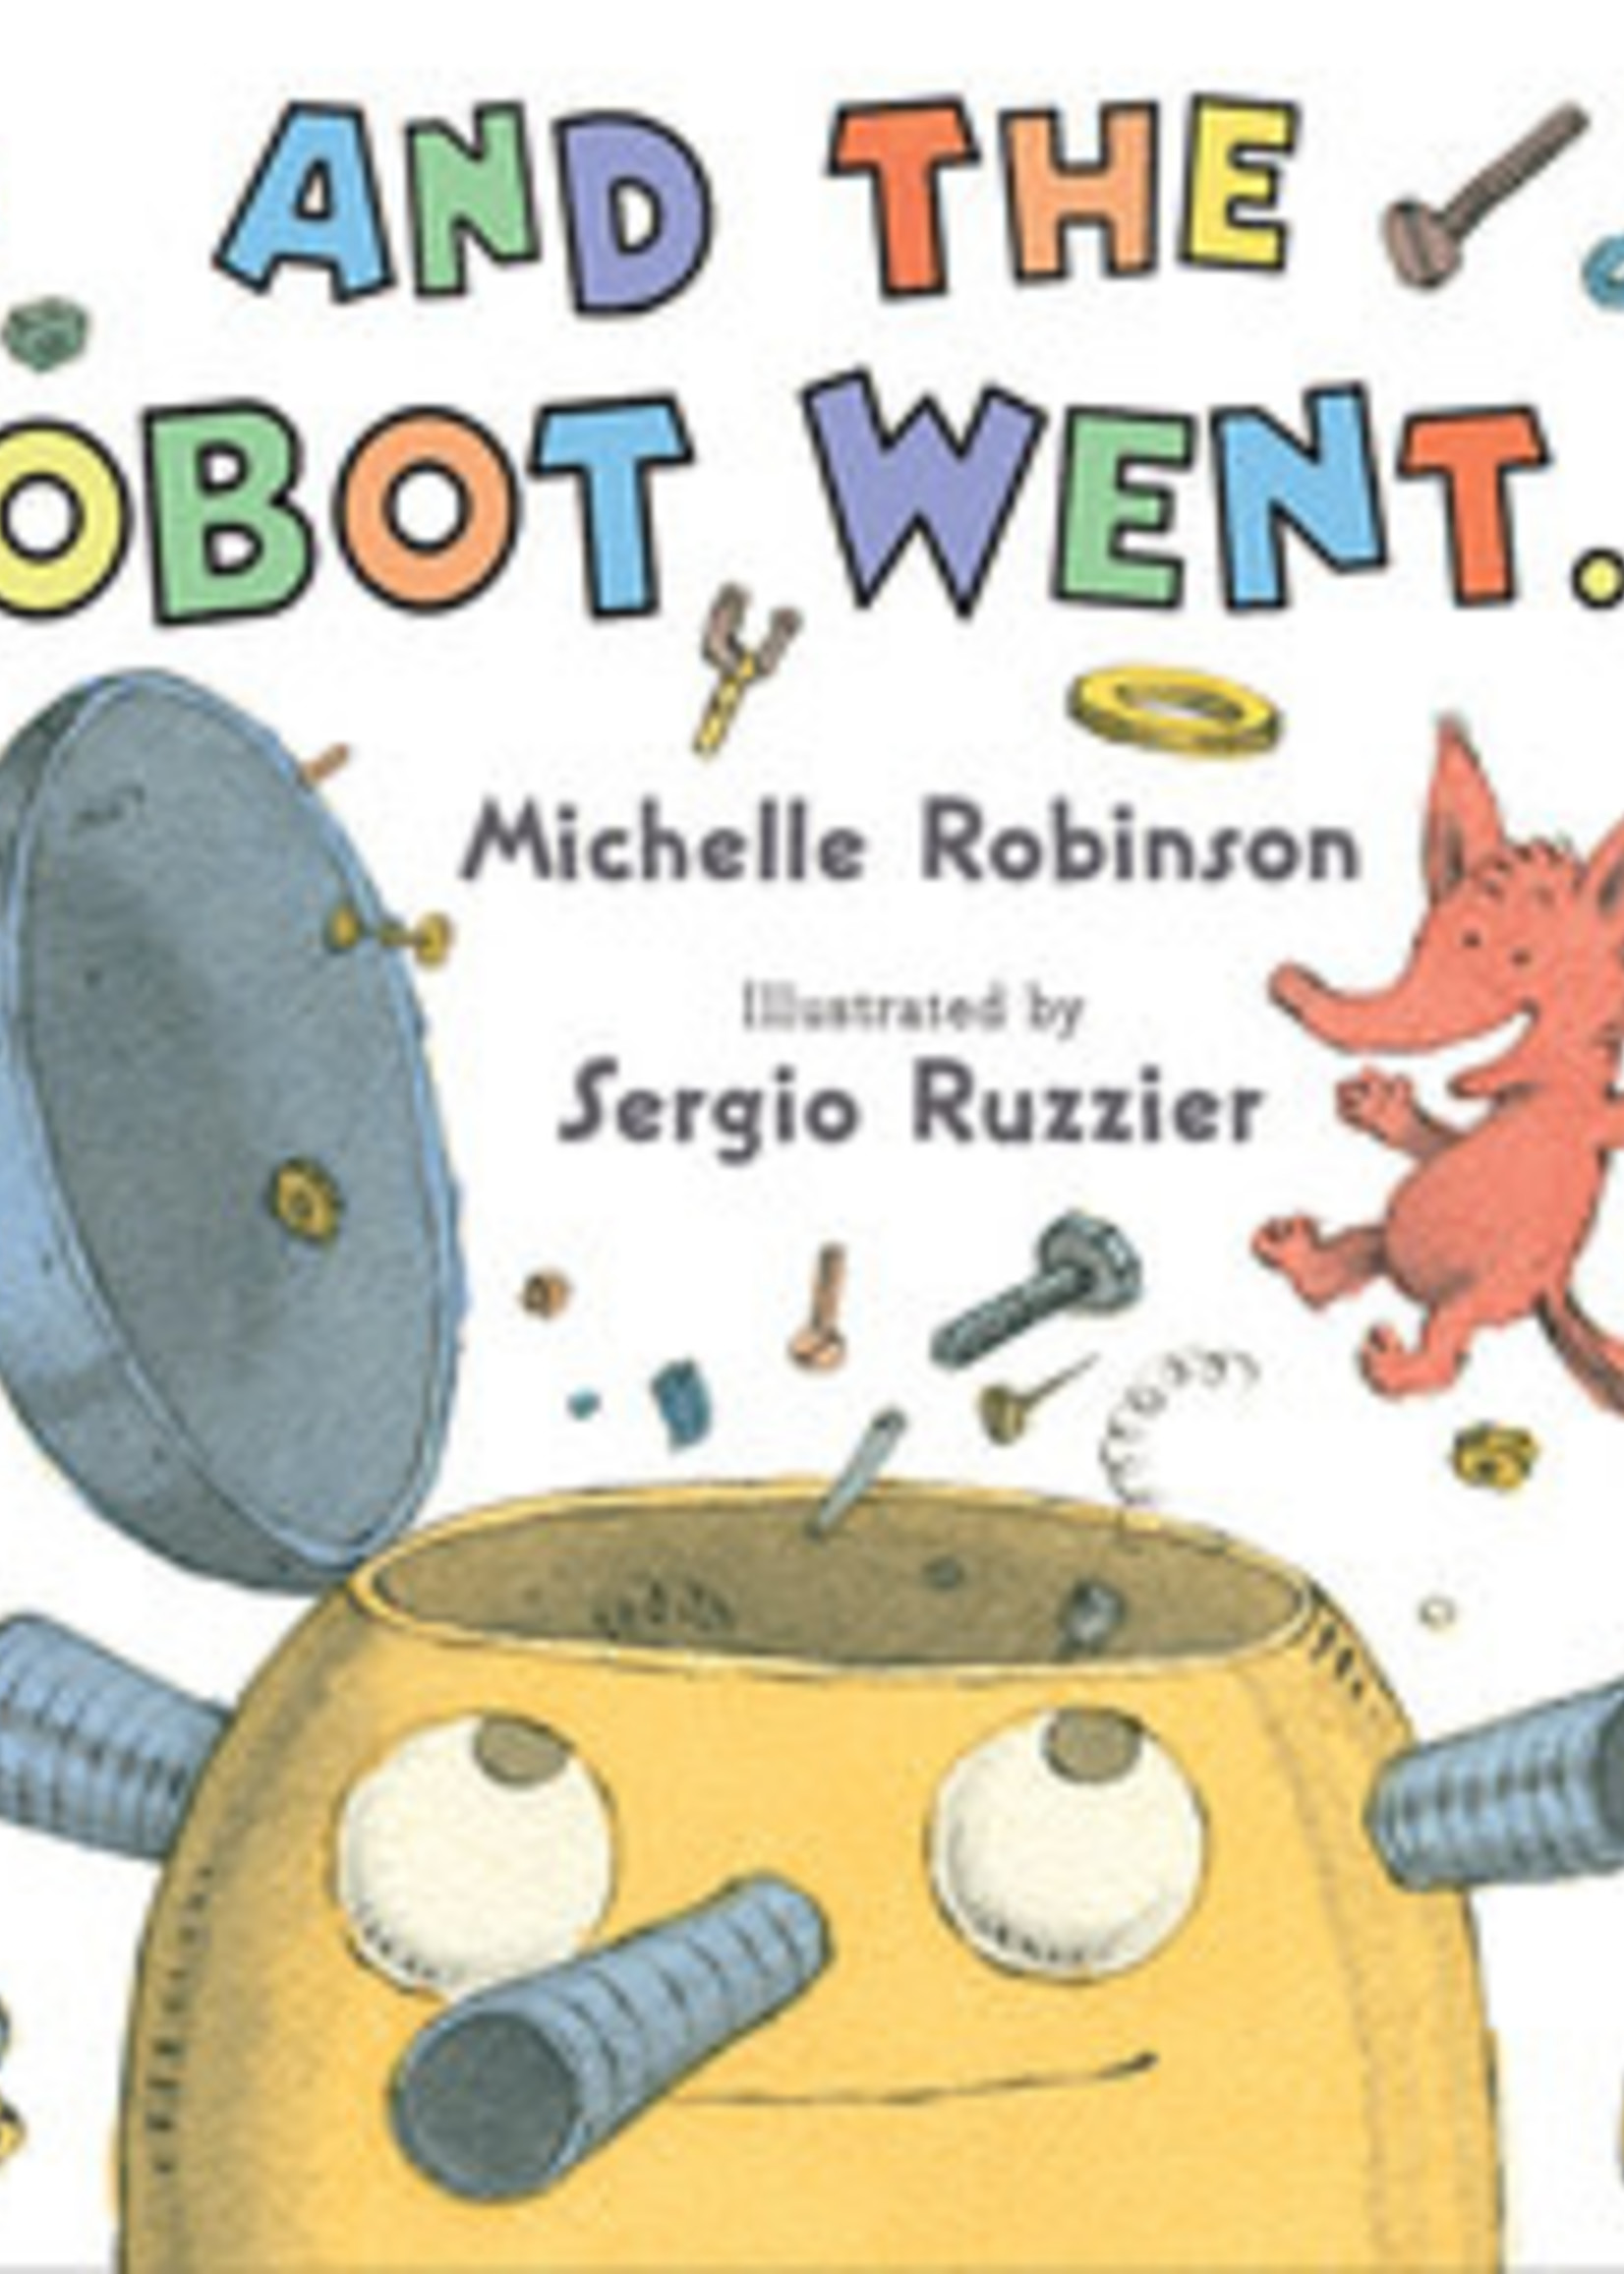 And the Robot Went . . . by Michelle Robinson,  Sergio Ruzzier